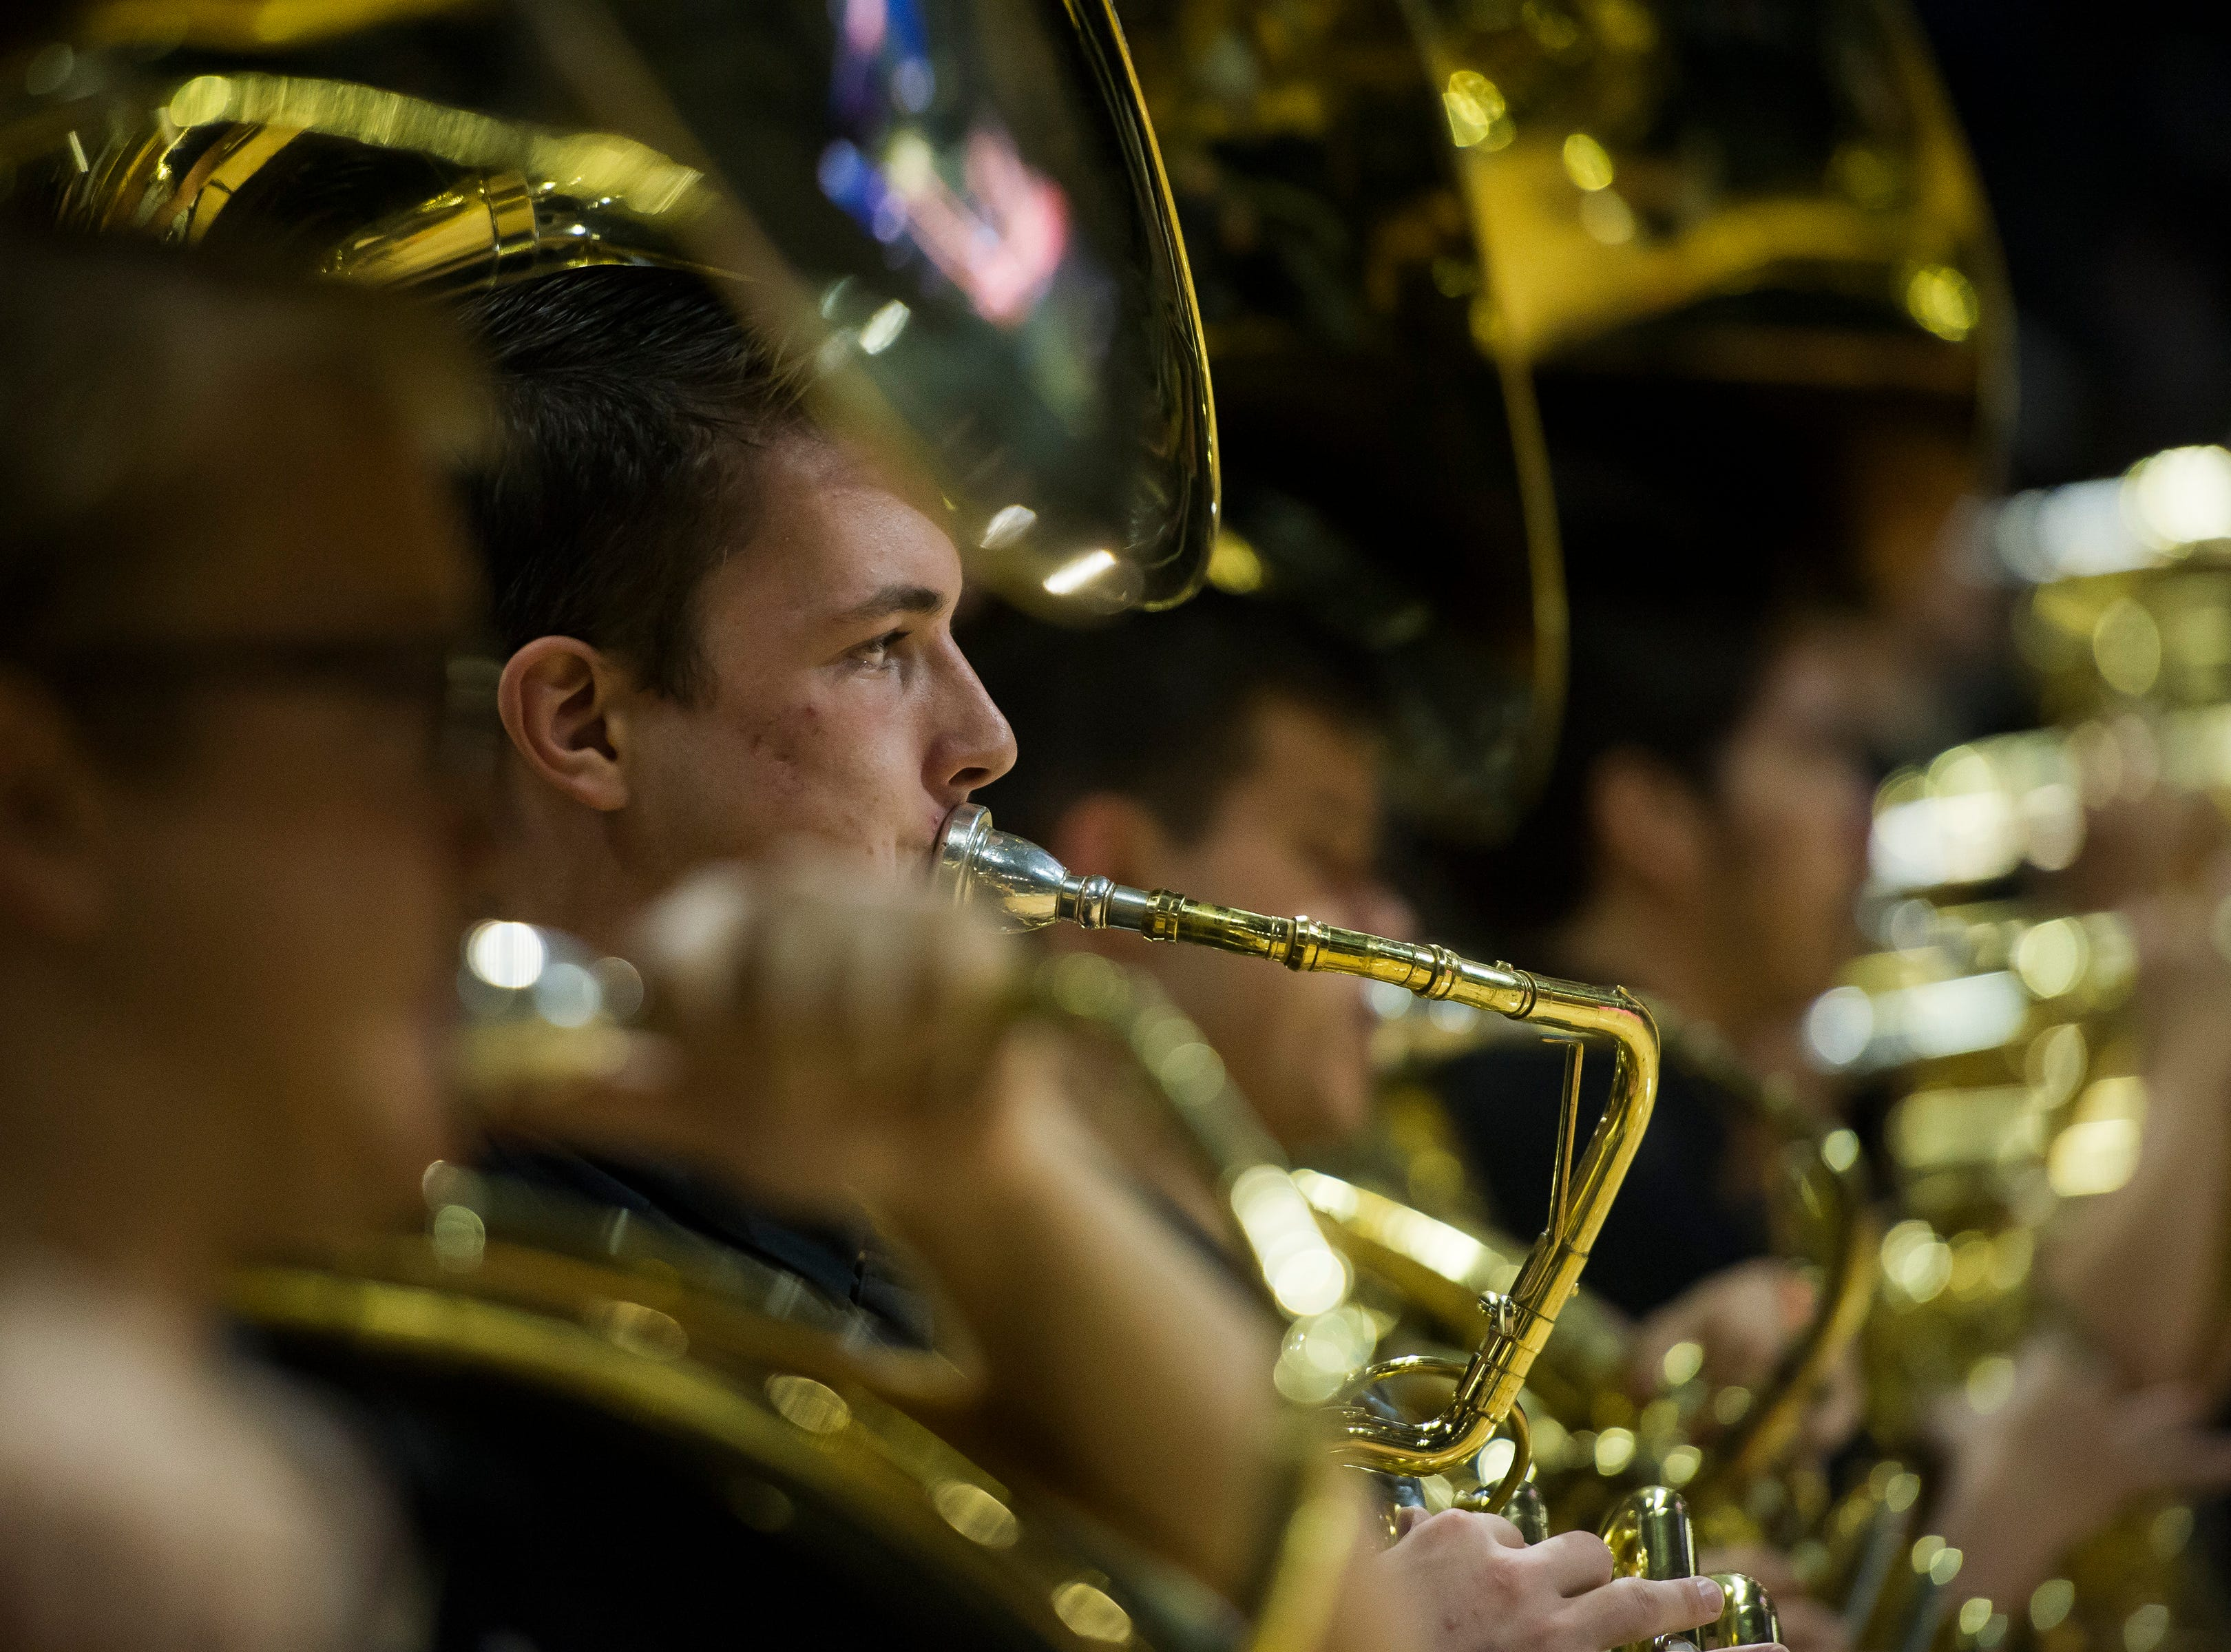 The University of Colorado band plays before a game against Colorado State University on Saturday, Dec. 1, 2018, at the CU Event Center in Boulder, Colo.